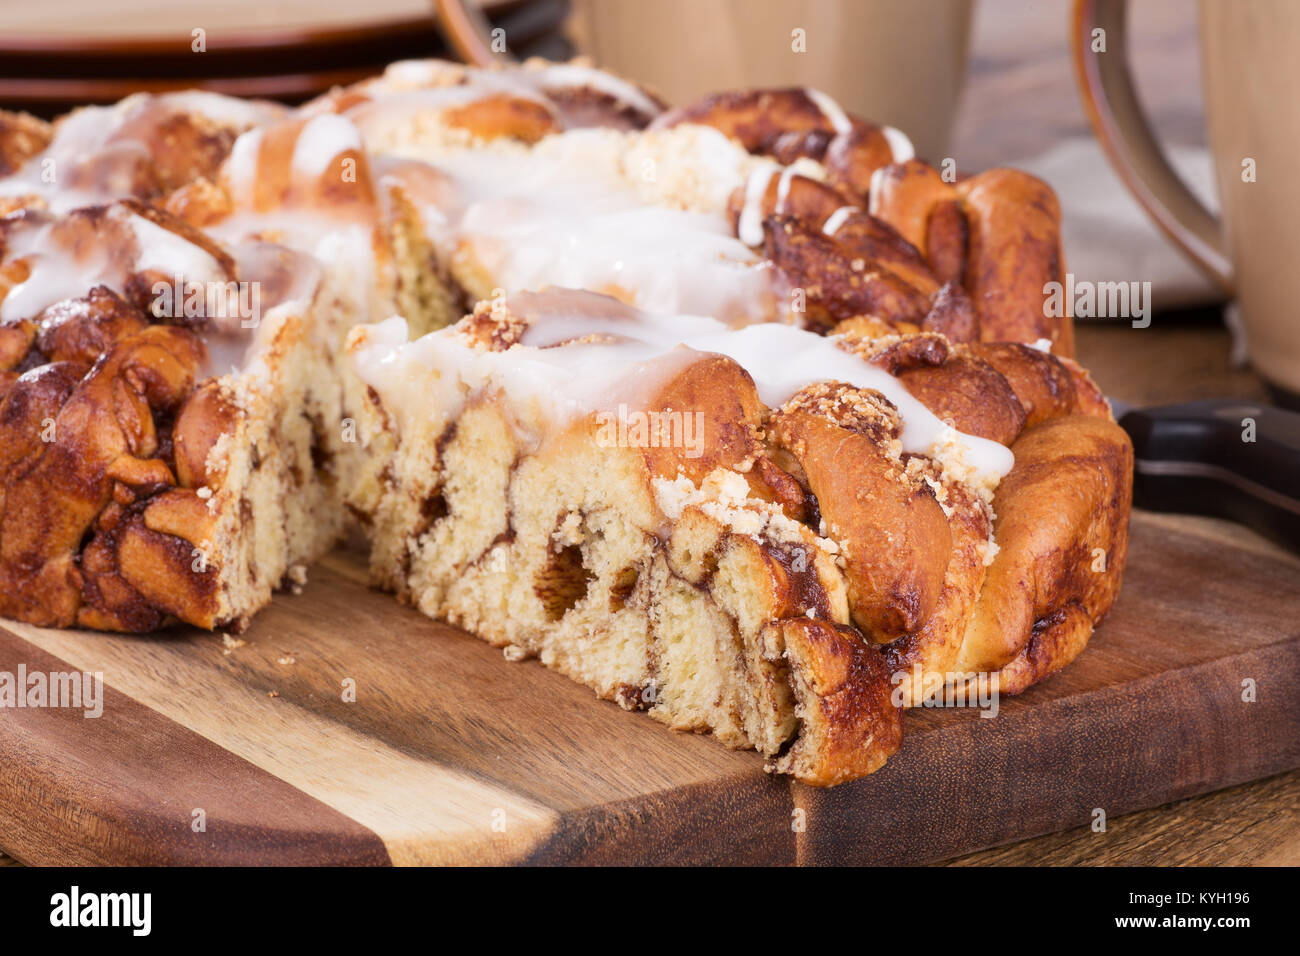 Slice of glazed struesel coffee cake on wooden platter with shallow depth of field - Stock Image